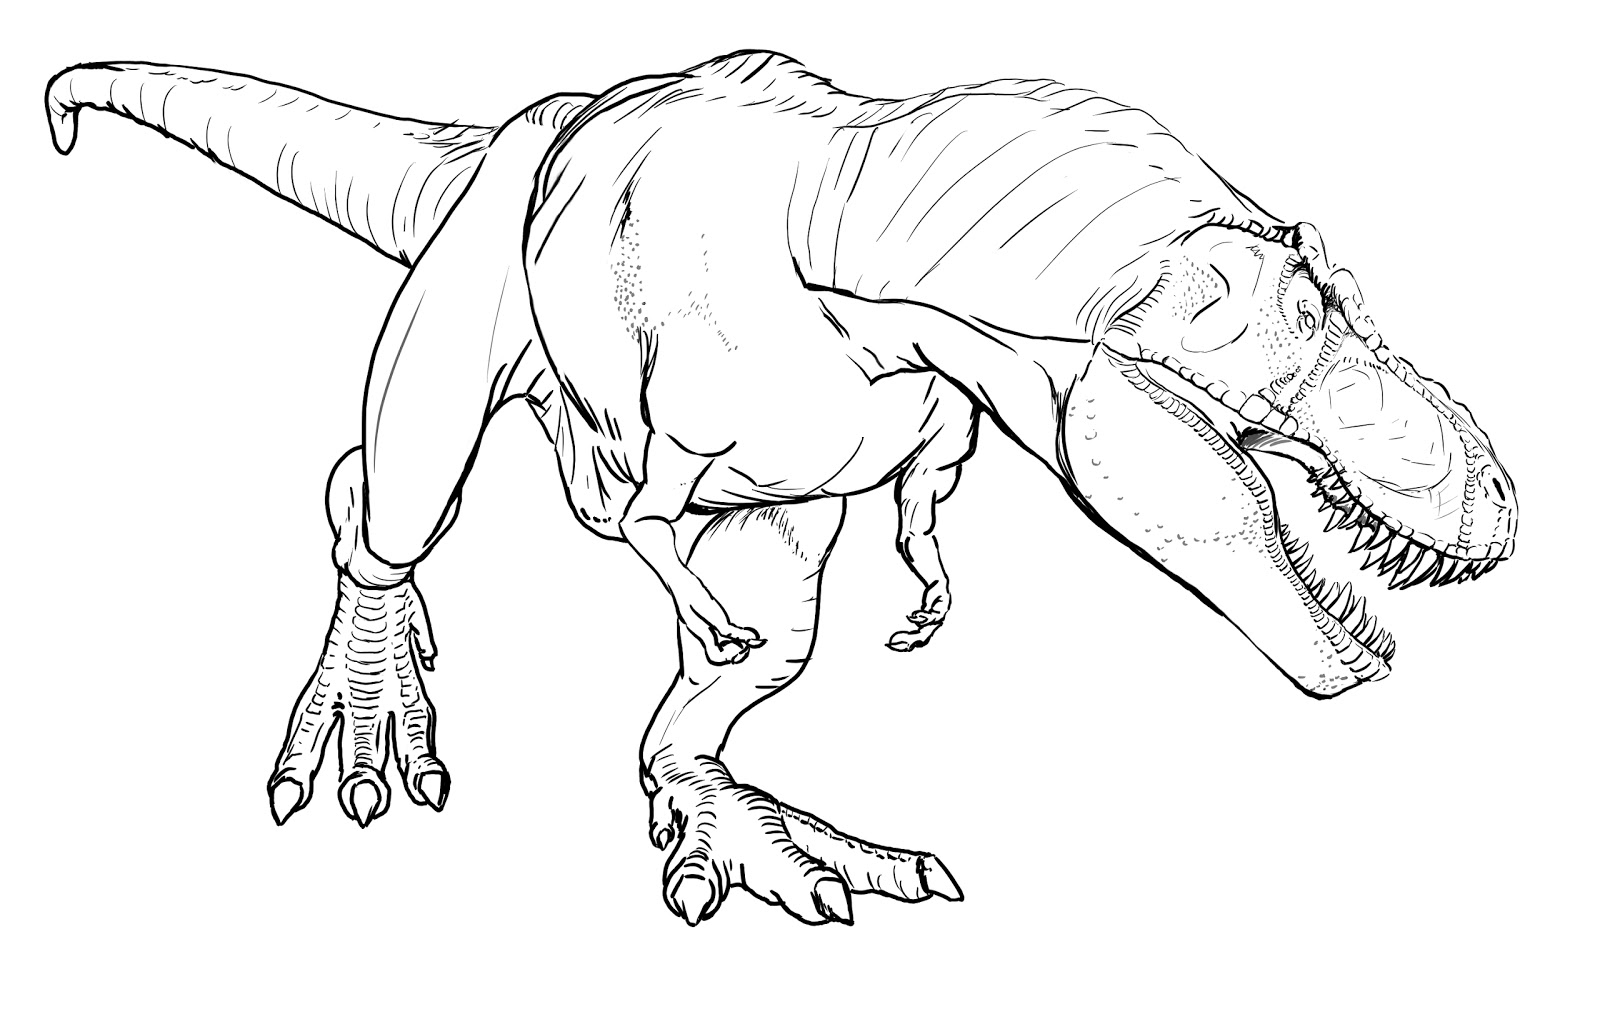 Trex coloring pages best coloring pages for kids for Printable coloring pages dinosaurs